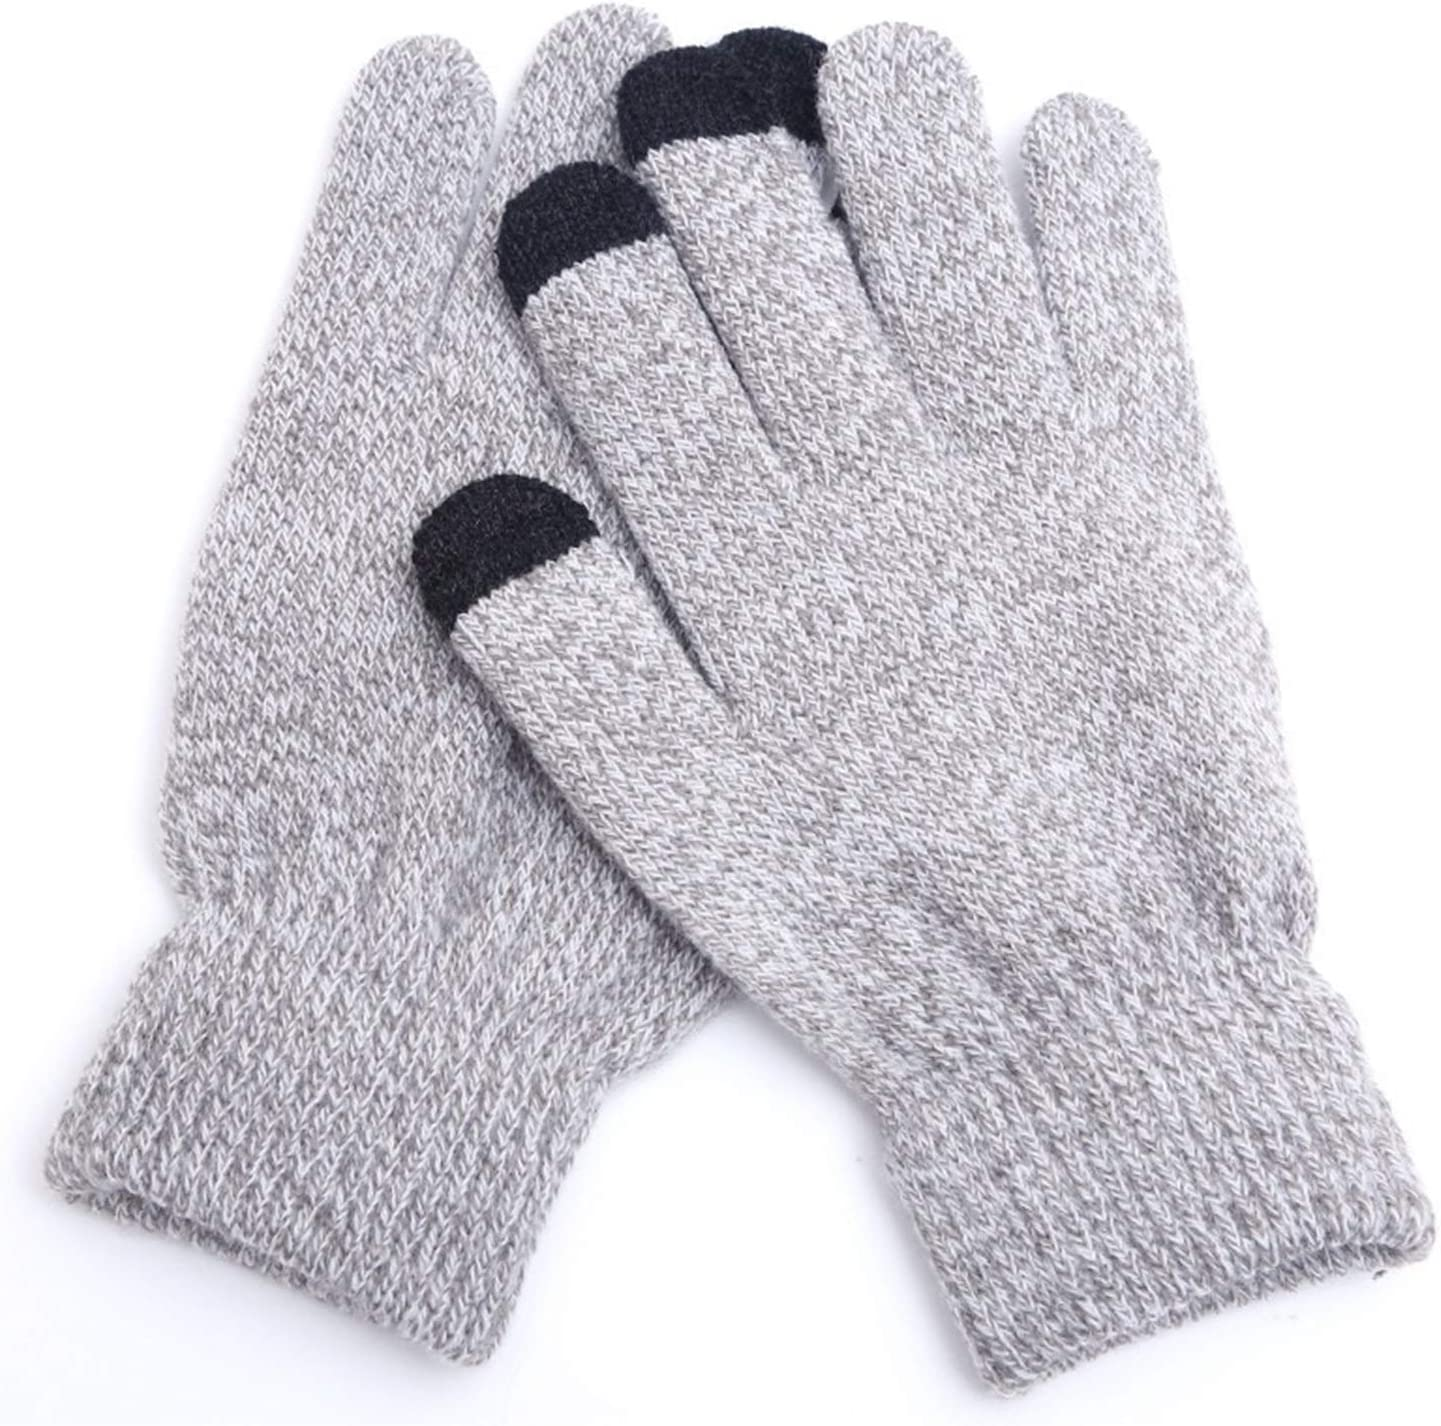 JBIVWW Unisex Winter Knitting Touch Screen Gloves Solid Fashion Thick Keep Warm Mitten Spring Autumn Non-Slip Woman Man Glove (Color : 05 Gray White, Gloves Size : One Size)